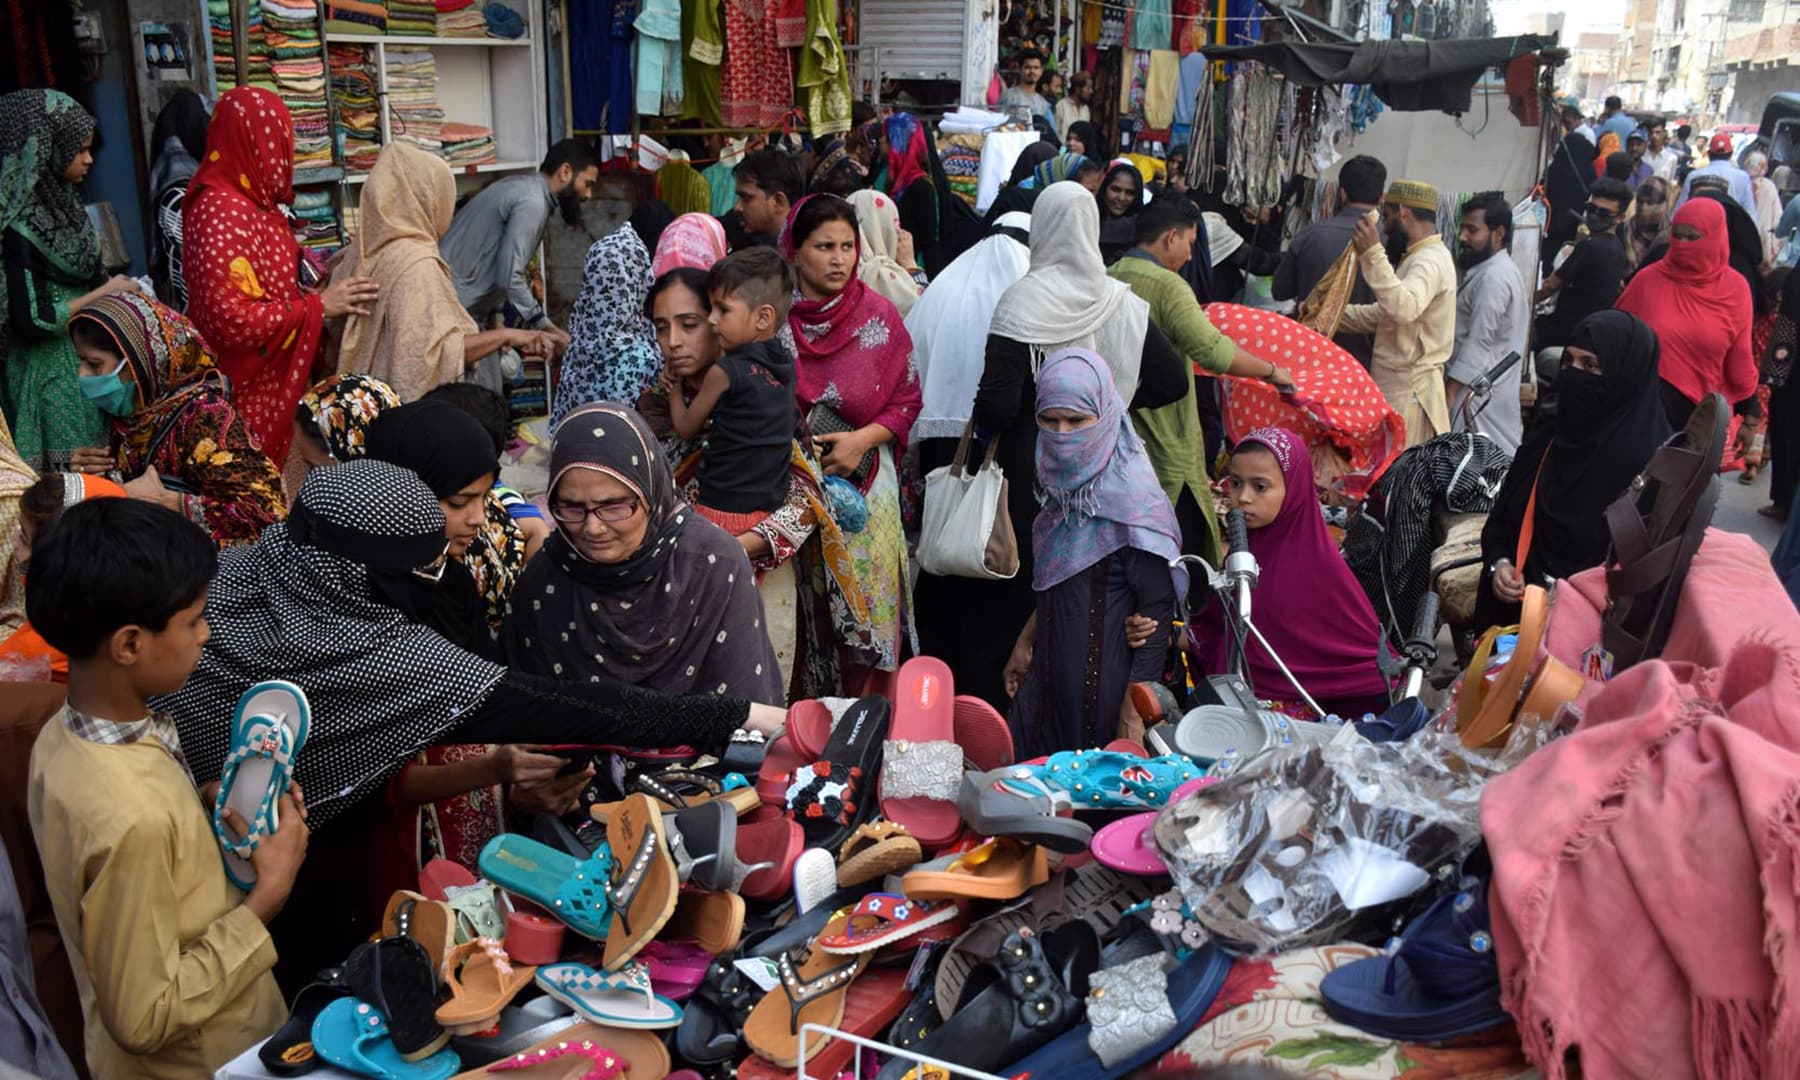 Women shop for shoes at a market in Hyderabad on Monday. — Photo by Umair Ali